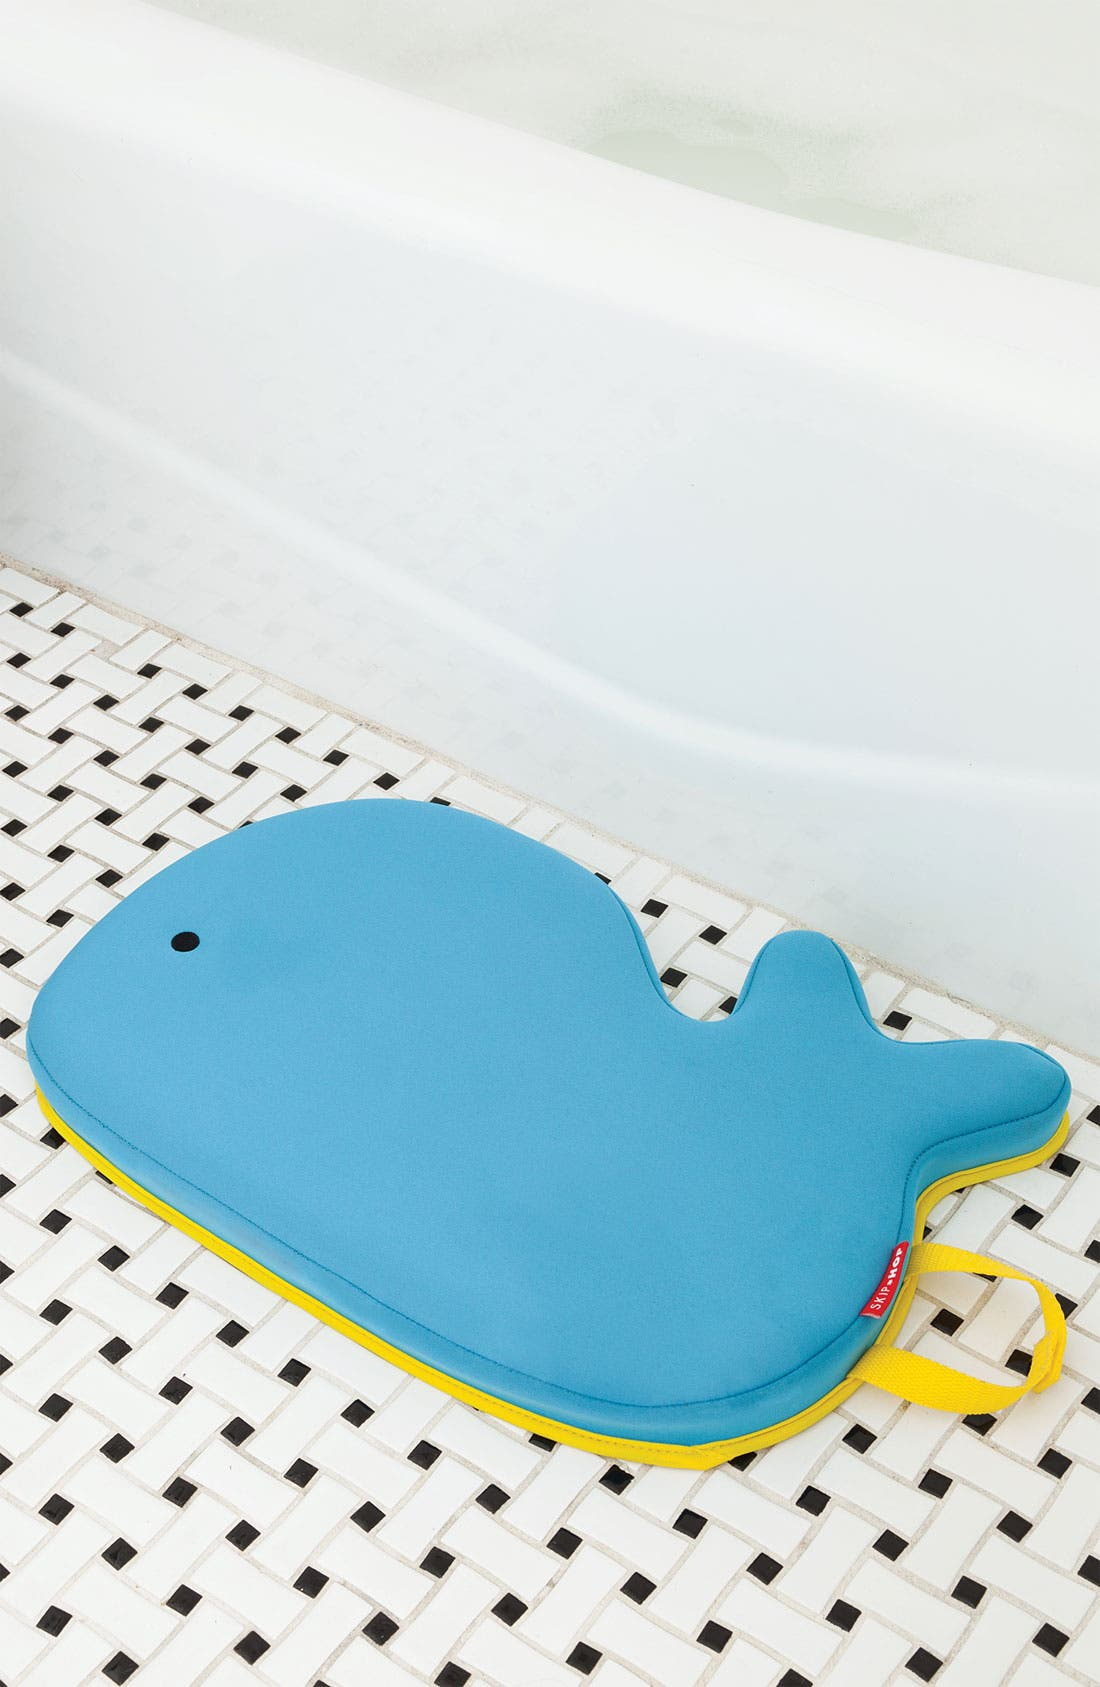 SKIP HOP,                             'Moby' Bath Kneeler,                             Alternate thumbnail 4, color,                             BLUE W/ YELLOW TRIM